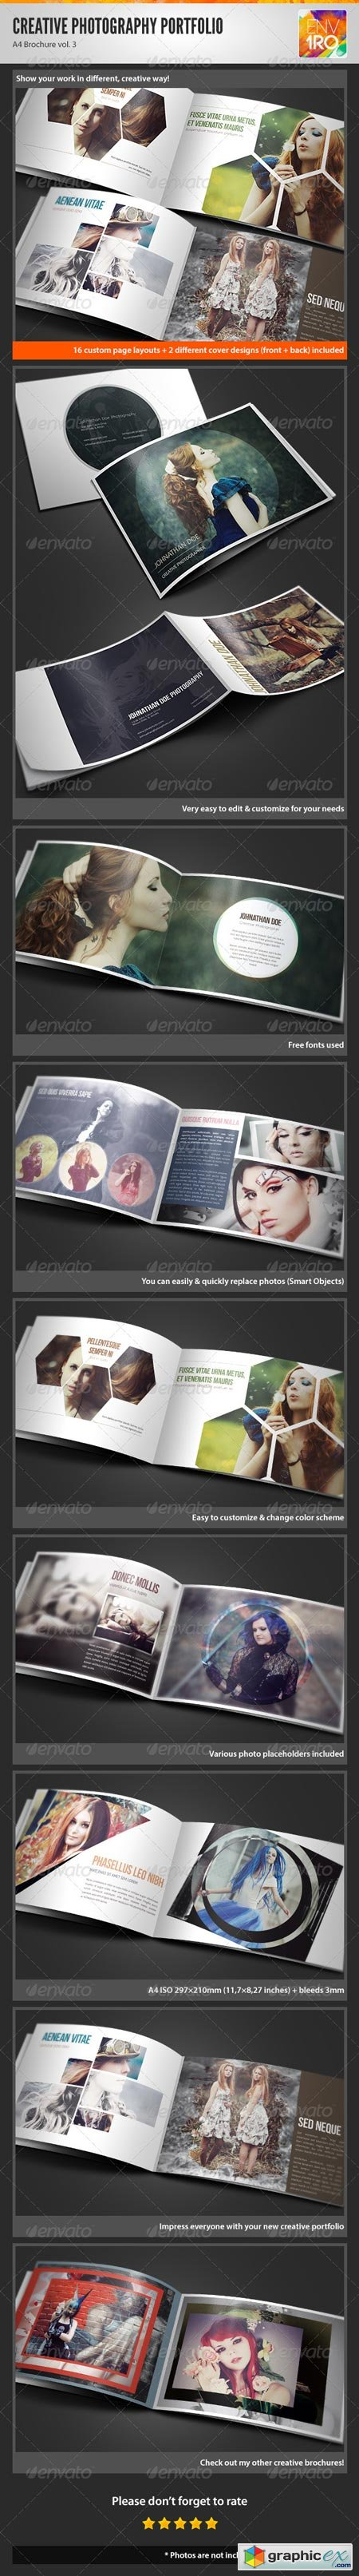 Creative Photography Portfolio A4 Brochure vol. 3 3117591